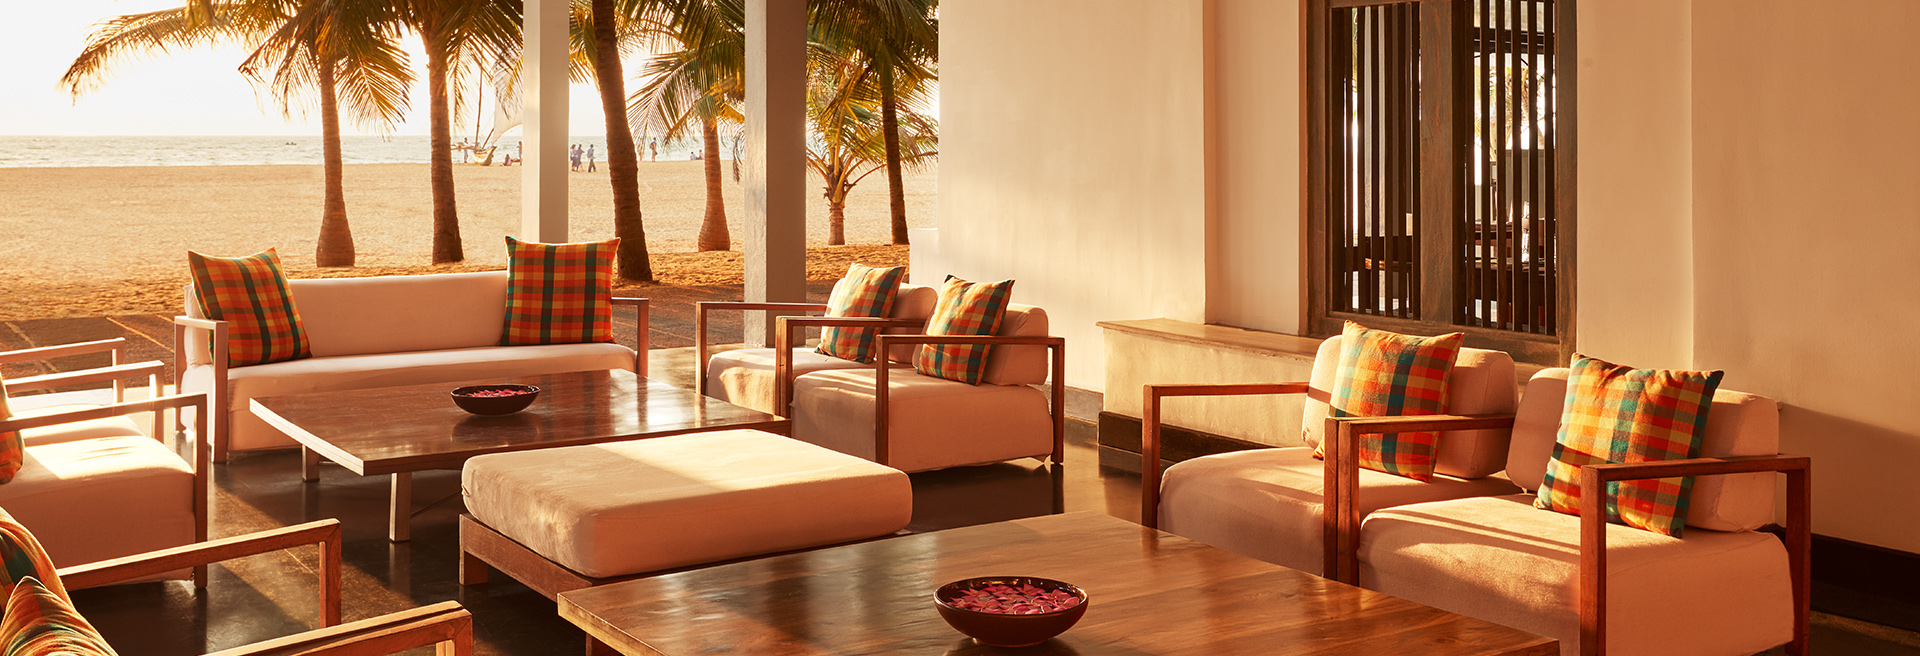 Open lounge area with array of sofas looking into the ocean